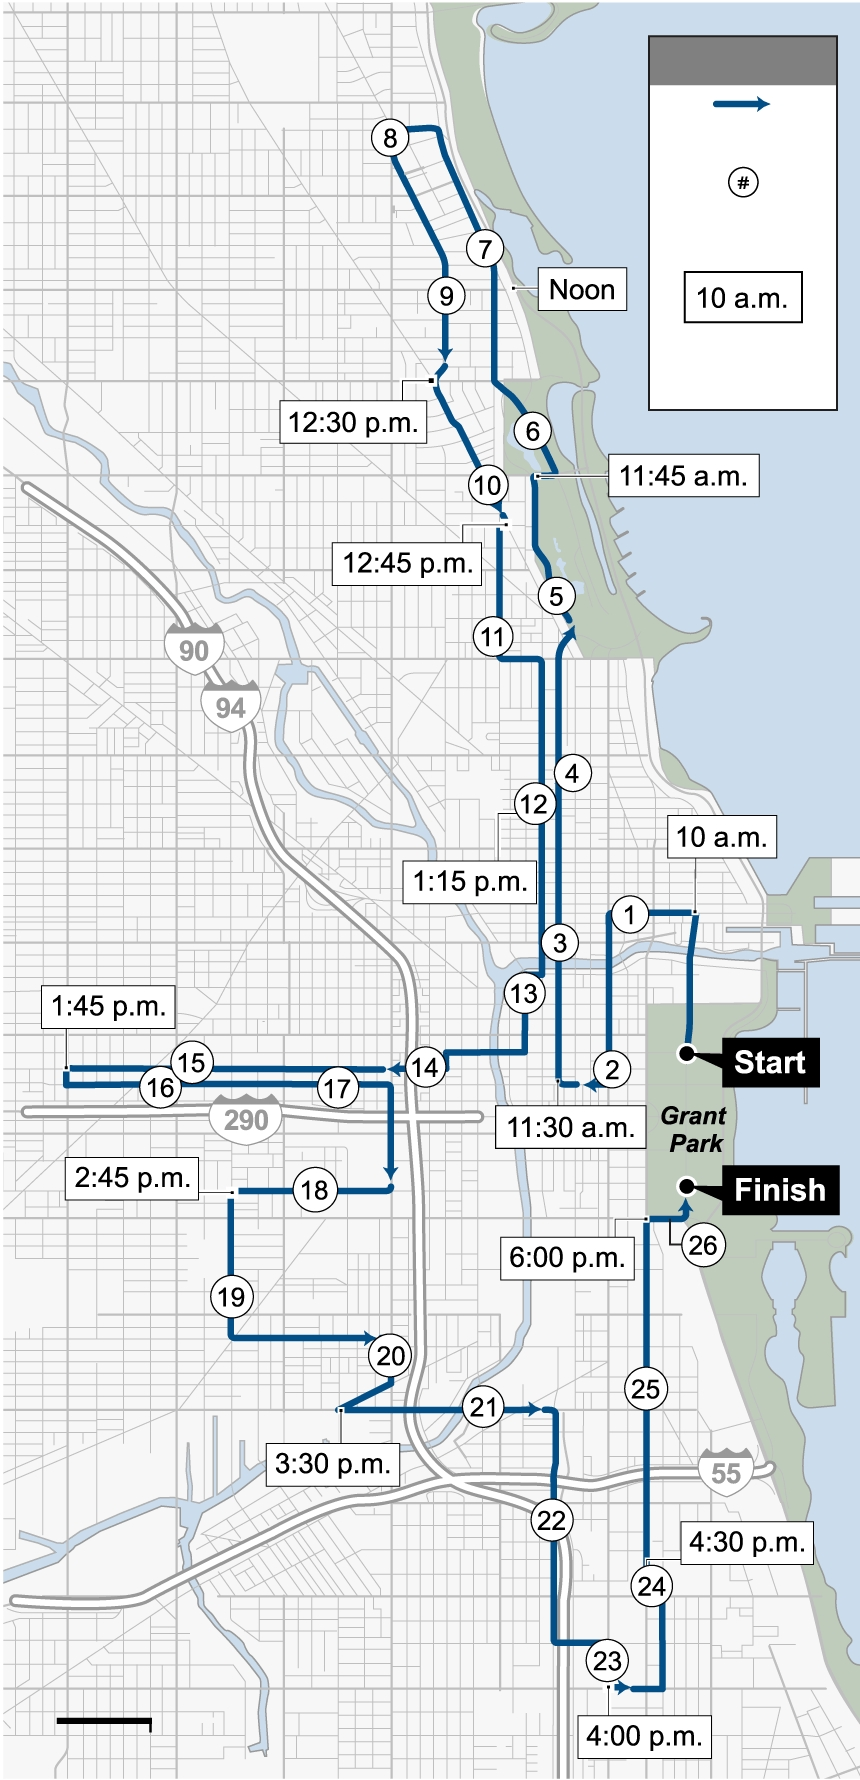 Chicago Marathon 2019: Course Map, Where To Watch The Race inside Chicago Marathon Map 2019